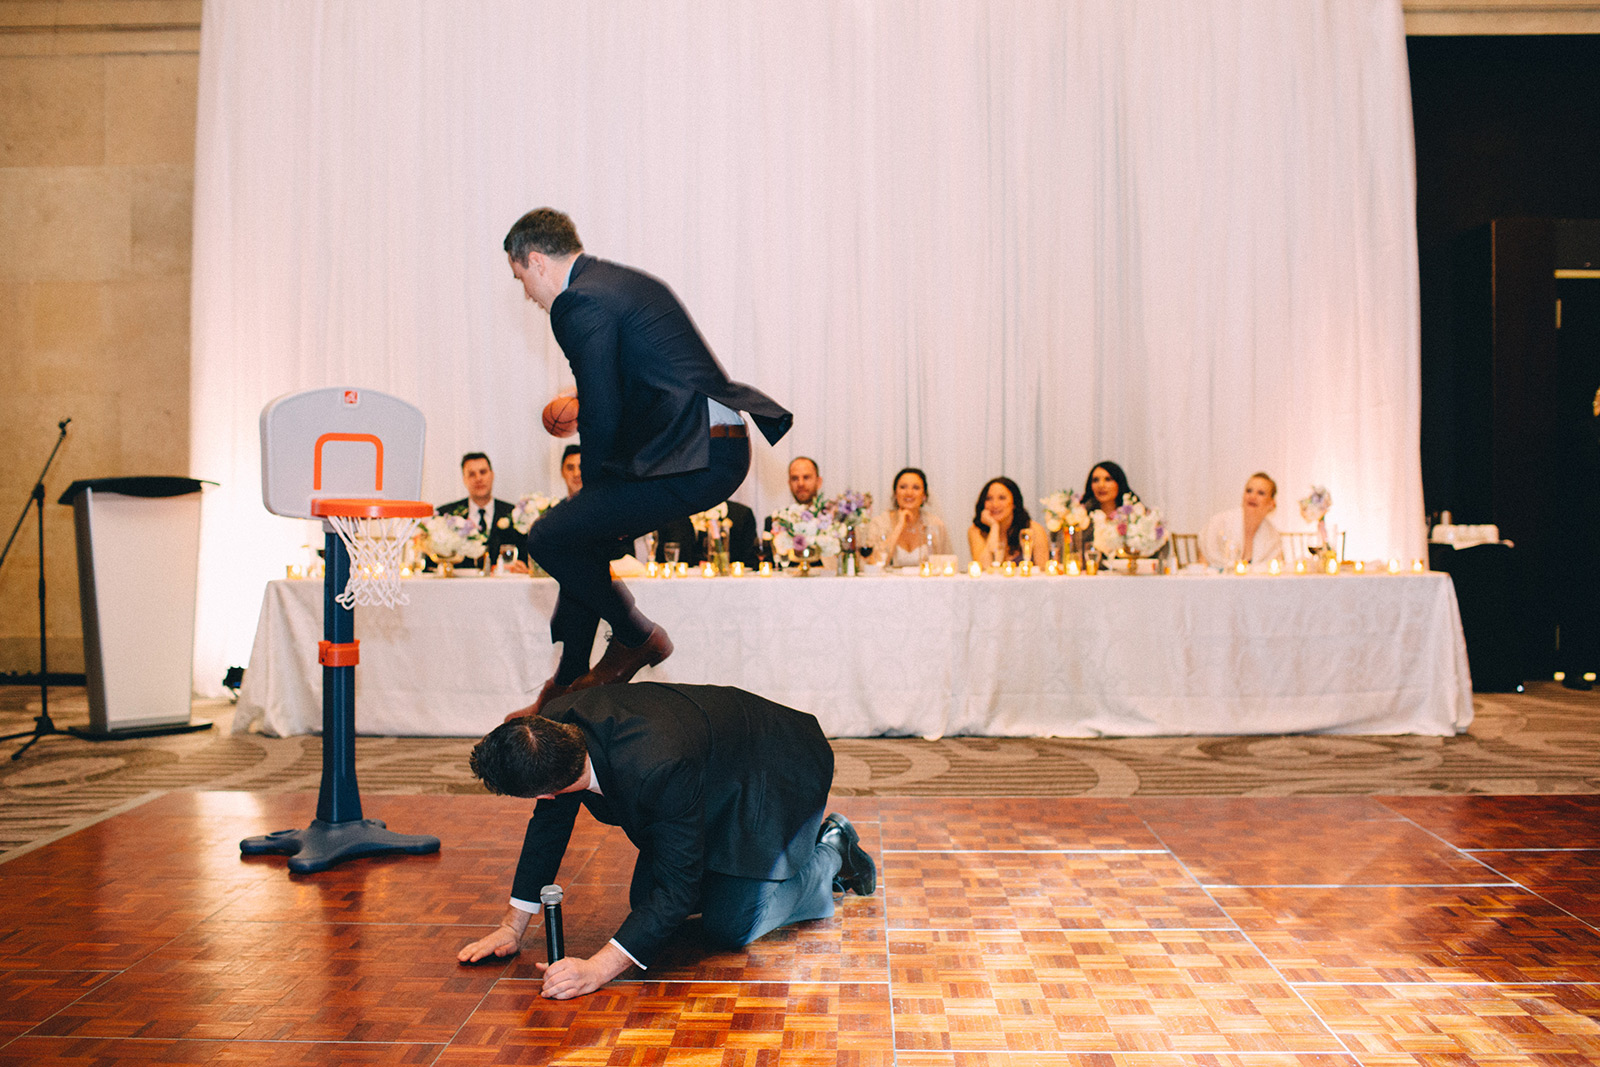 One-King-West-Toronto-wedding-photography_Sam-Wong-of-Visual-Cravings_KnR-36